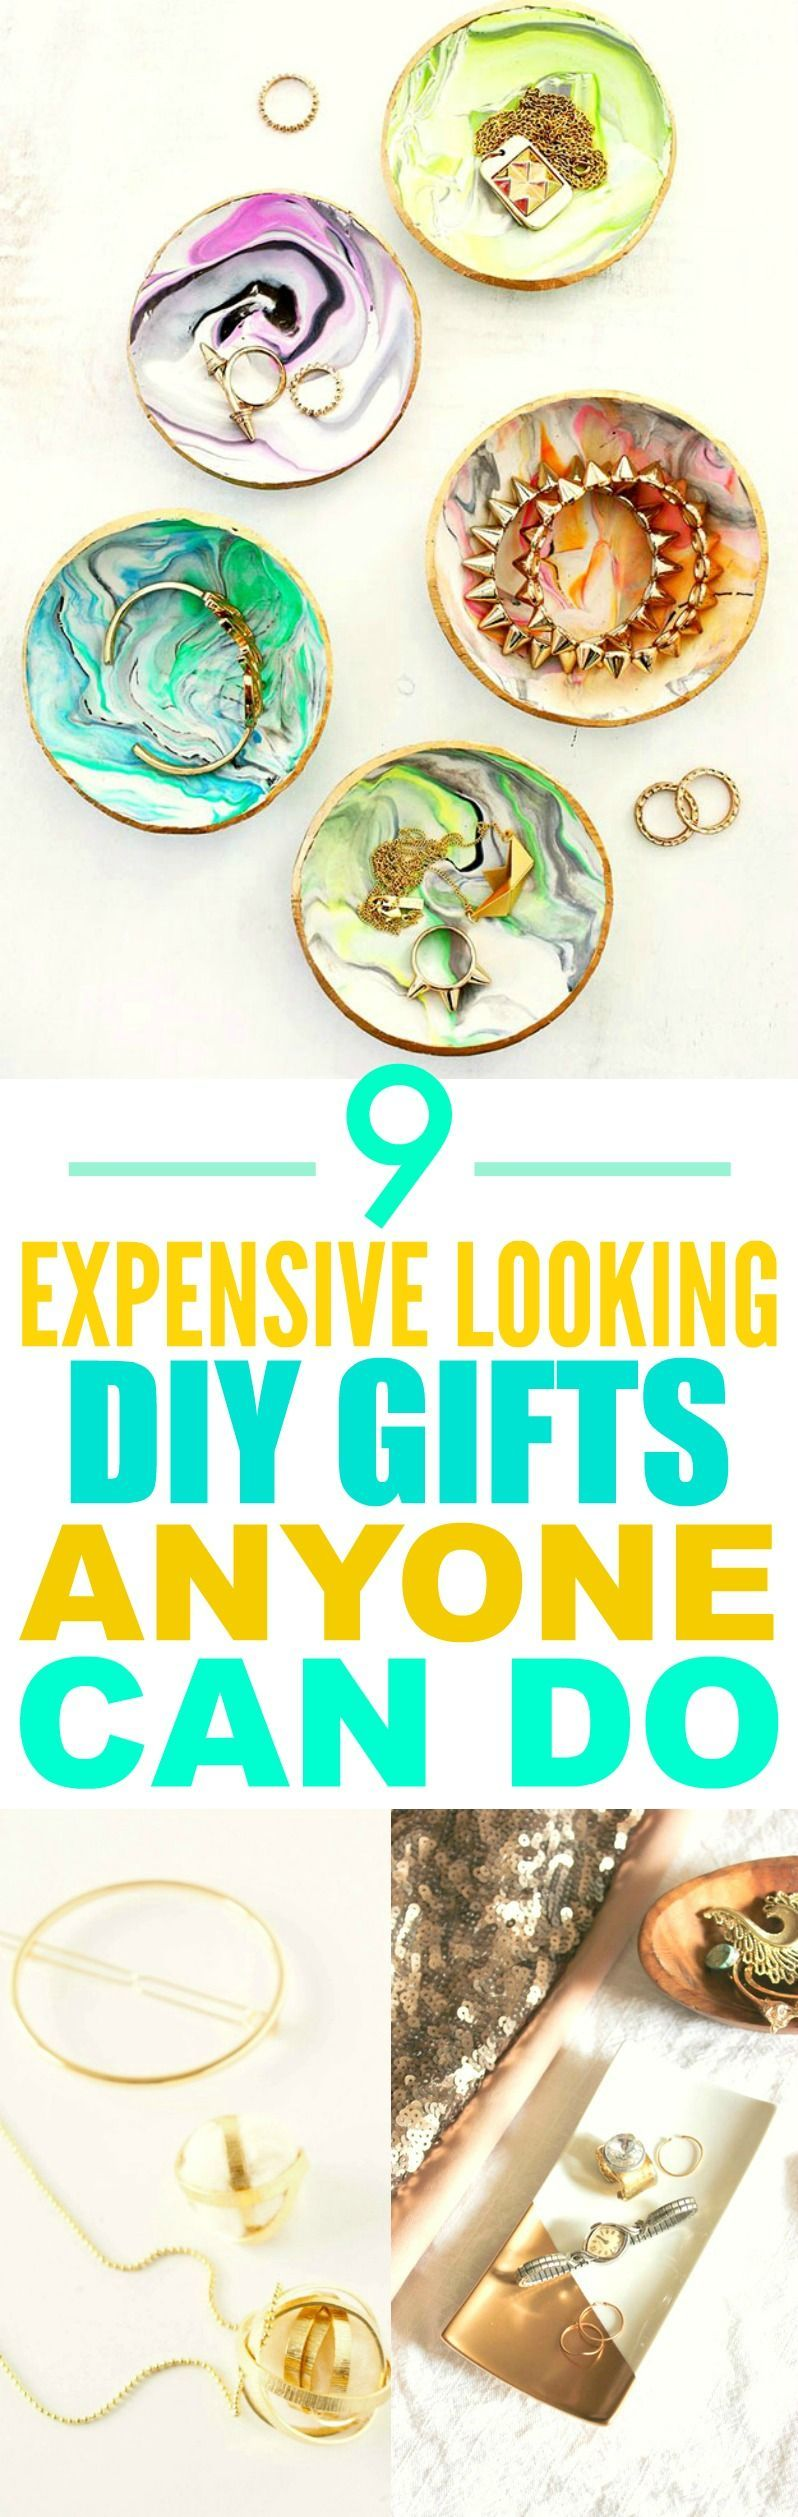 9 Expensive Looking Easy DIY Gifts - #DIY #Easy #Expensive #Gifts